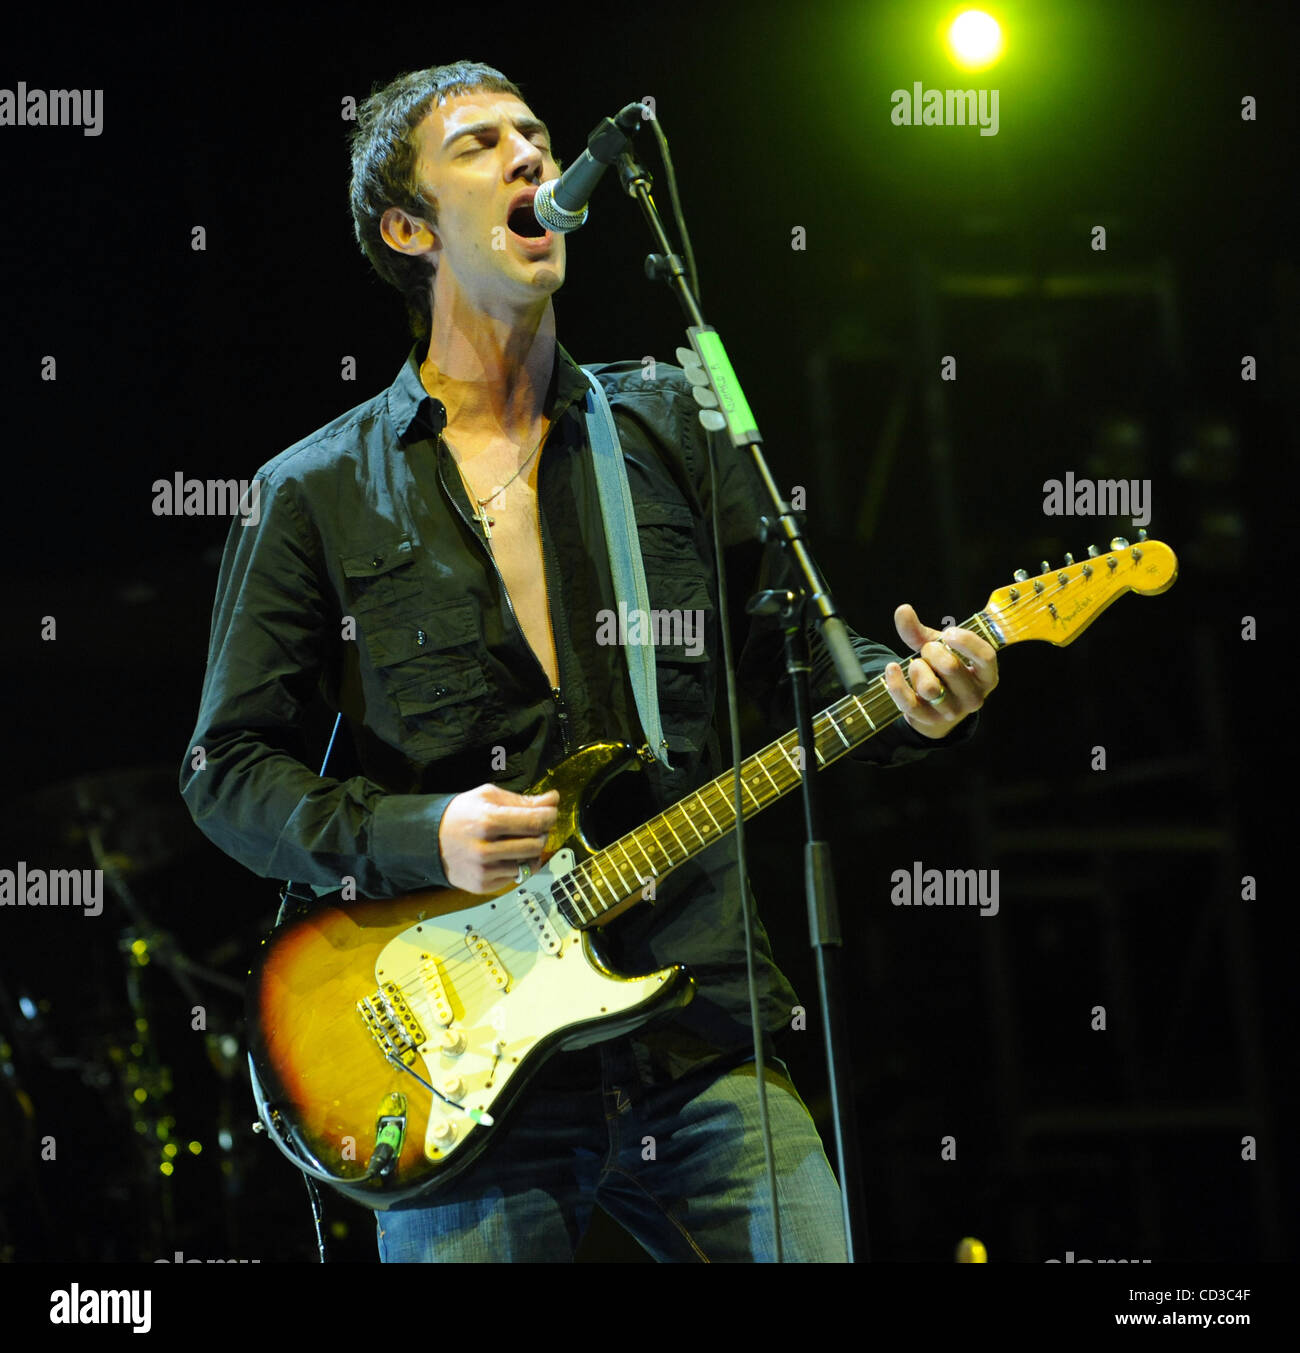 Apr 25, 2008 - Indio, California; USA - Musician RICHARD ASHCROFT of the band The Verve performs live as part of Stock Photo